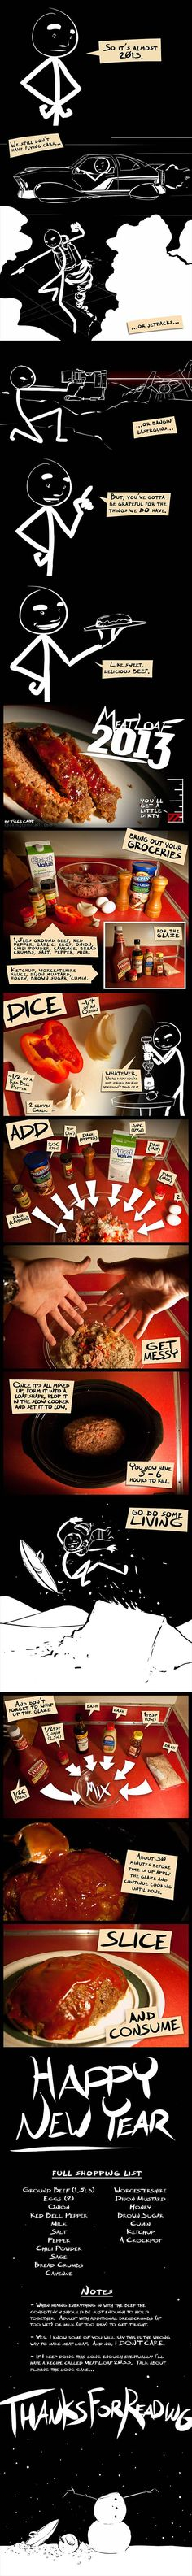 The Meatloaf of the Future... Until Tomorrow - Imgur